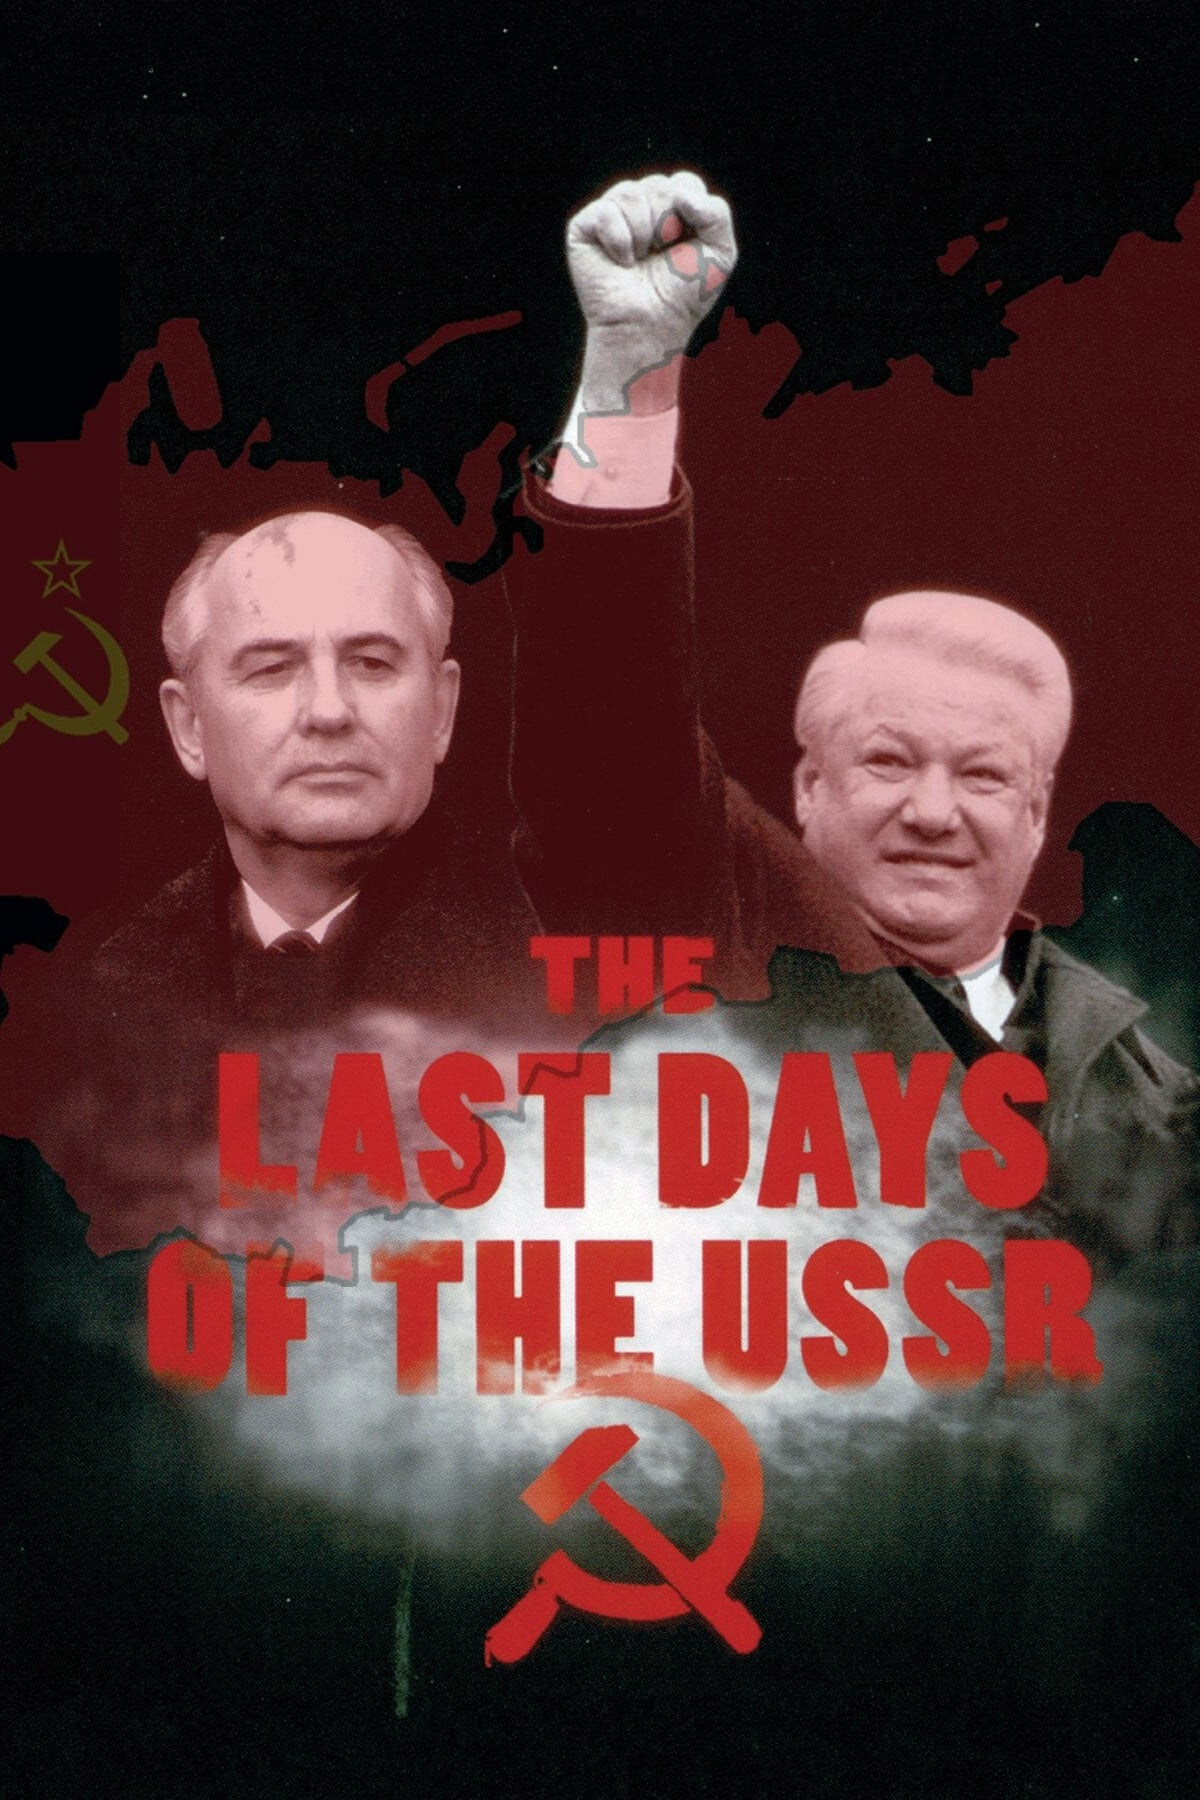 The Last Days of the USSR on FREECABLE TV